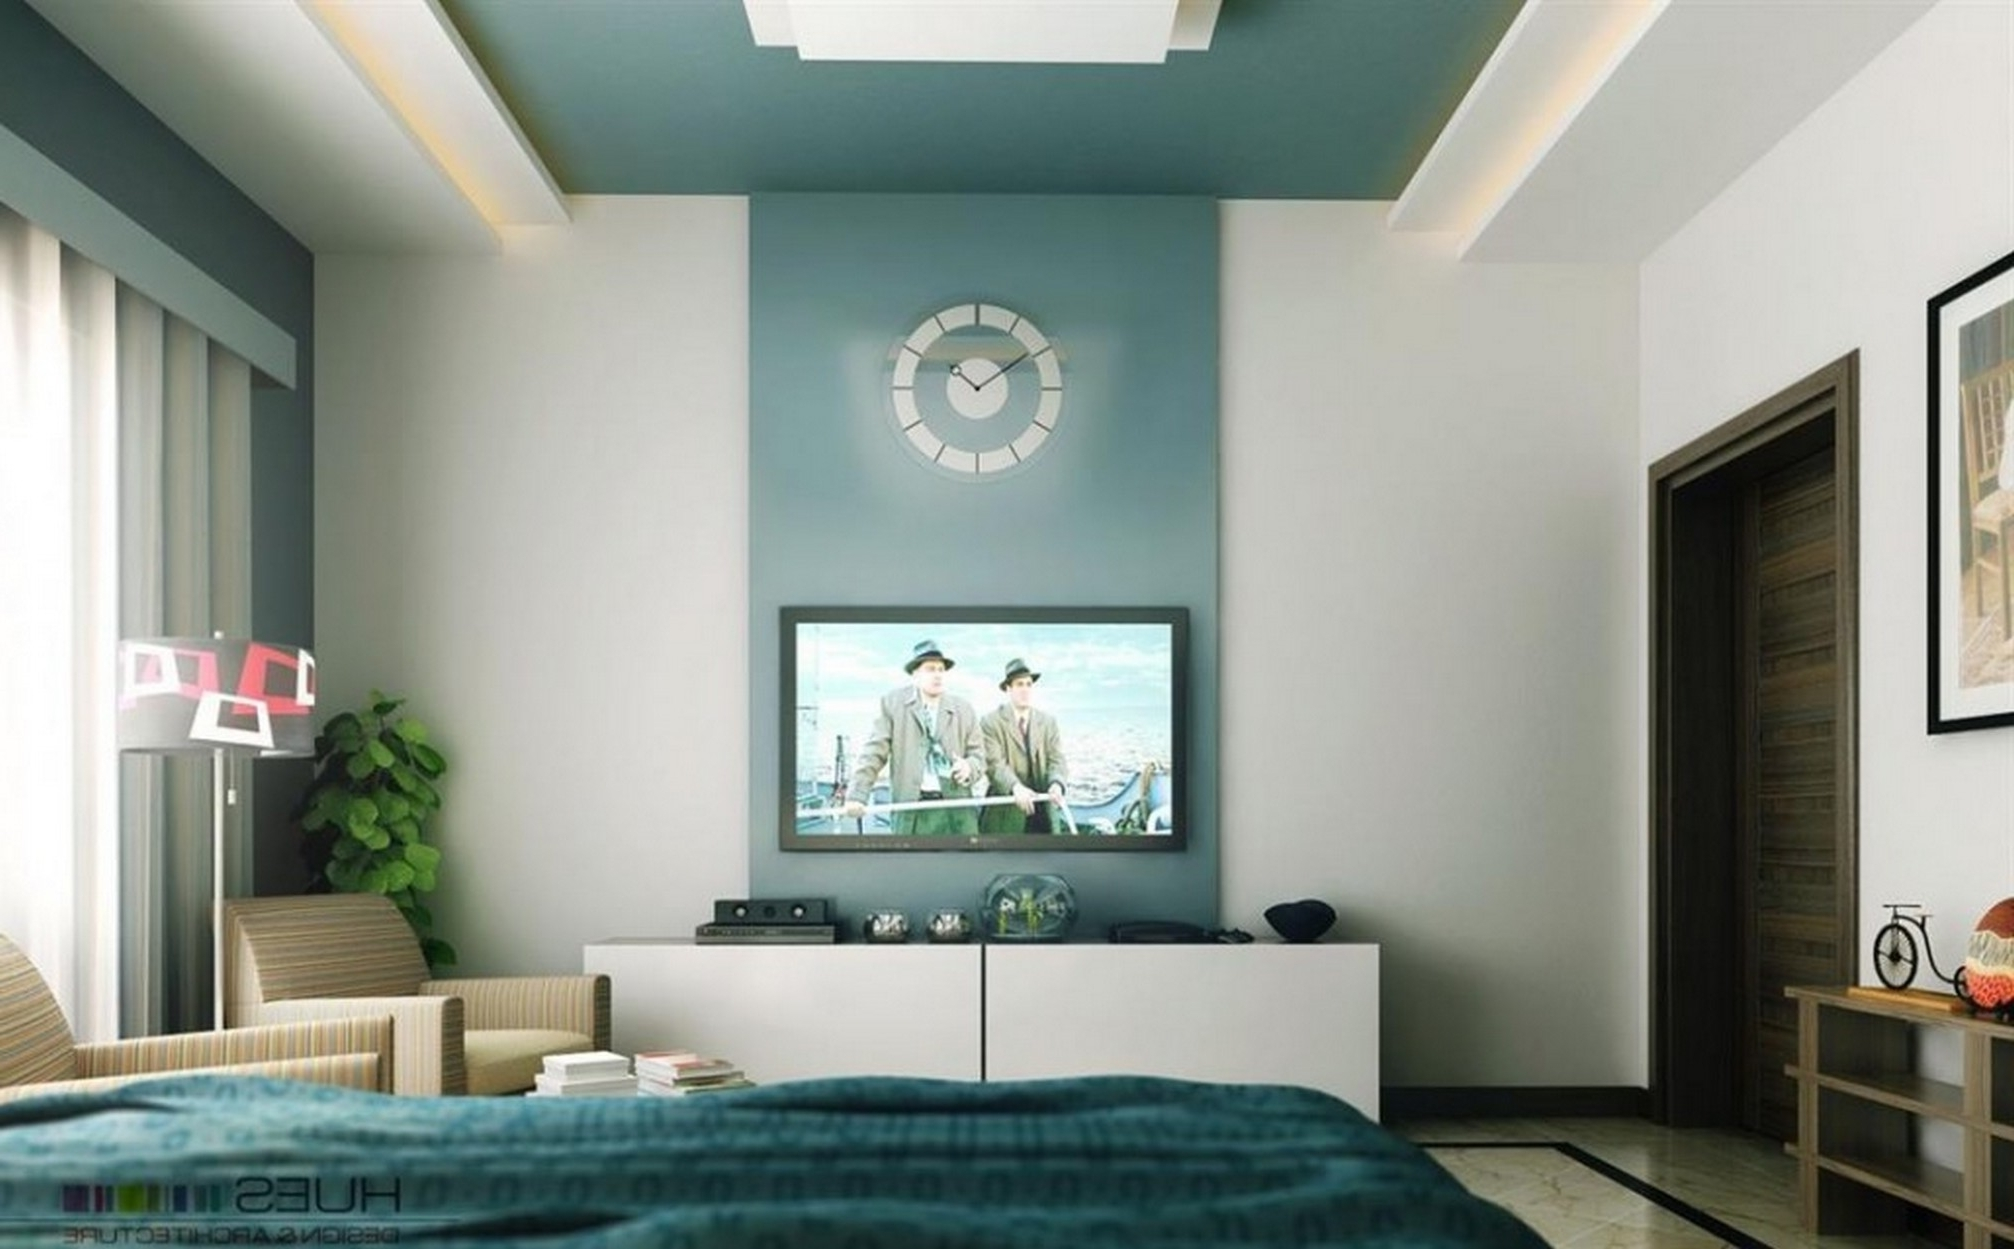 High Ceiling Wall Accents Regarding Trendy Accent Wall Color For High Walls With Round Clock Ideas And Tv On (View 6 of 15)